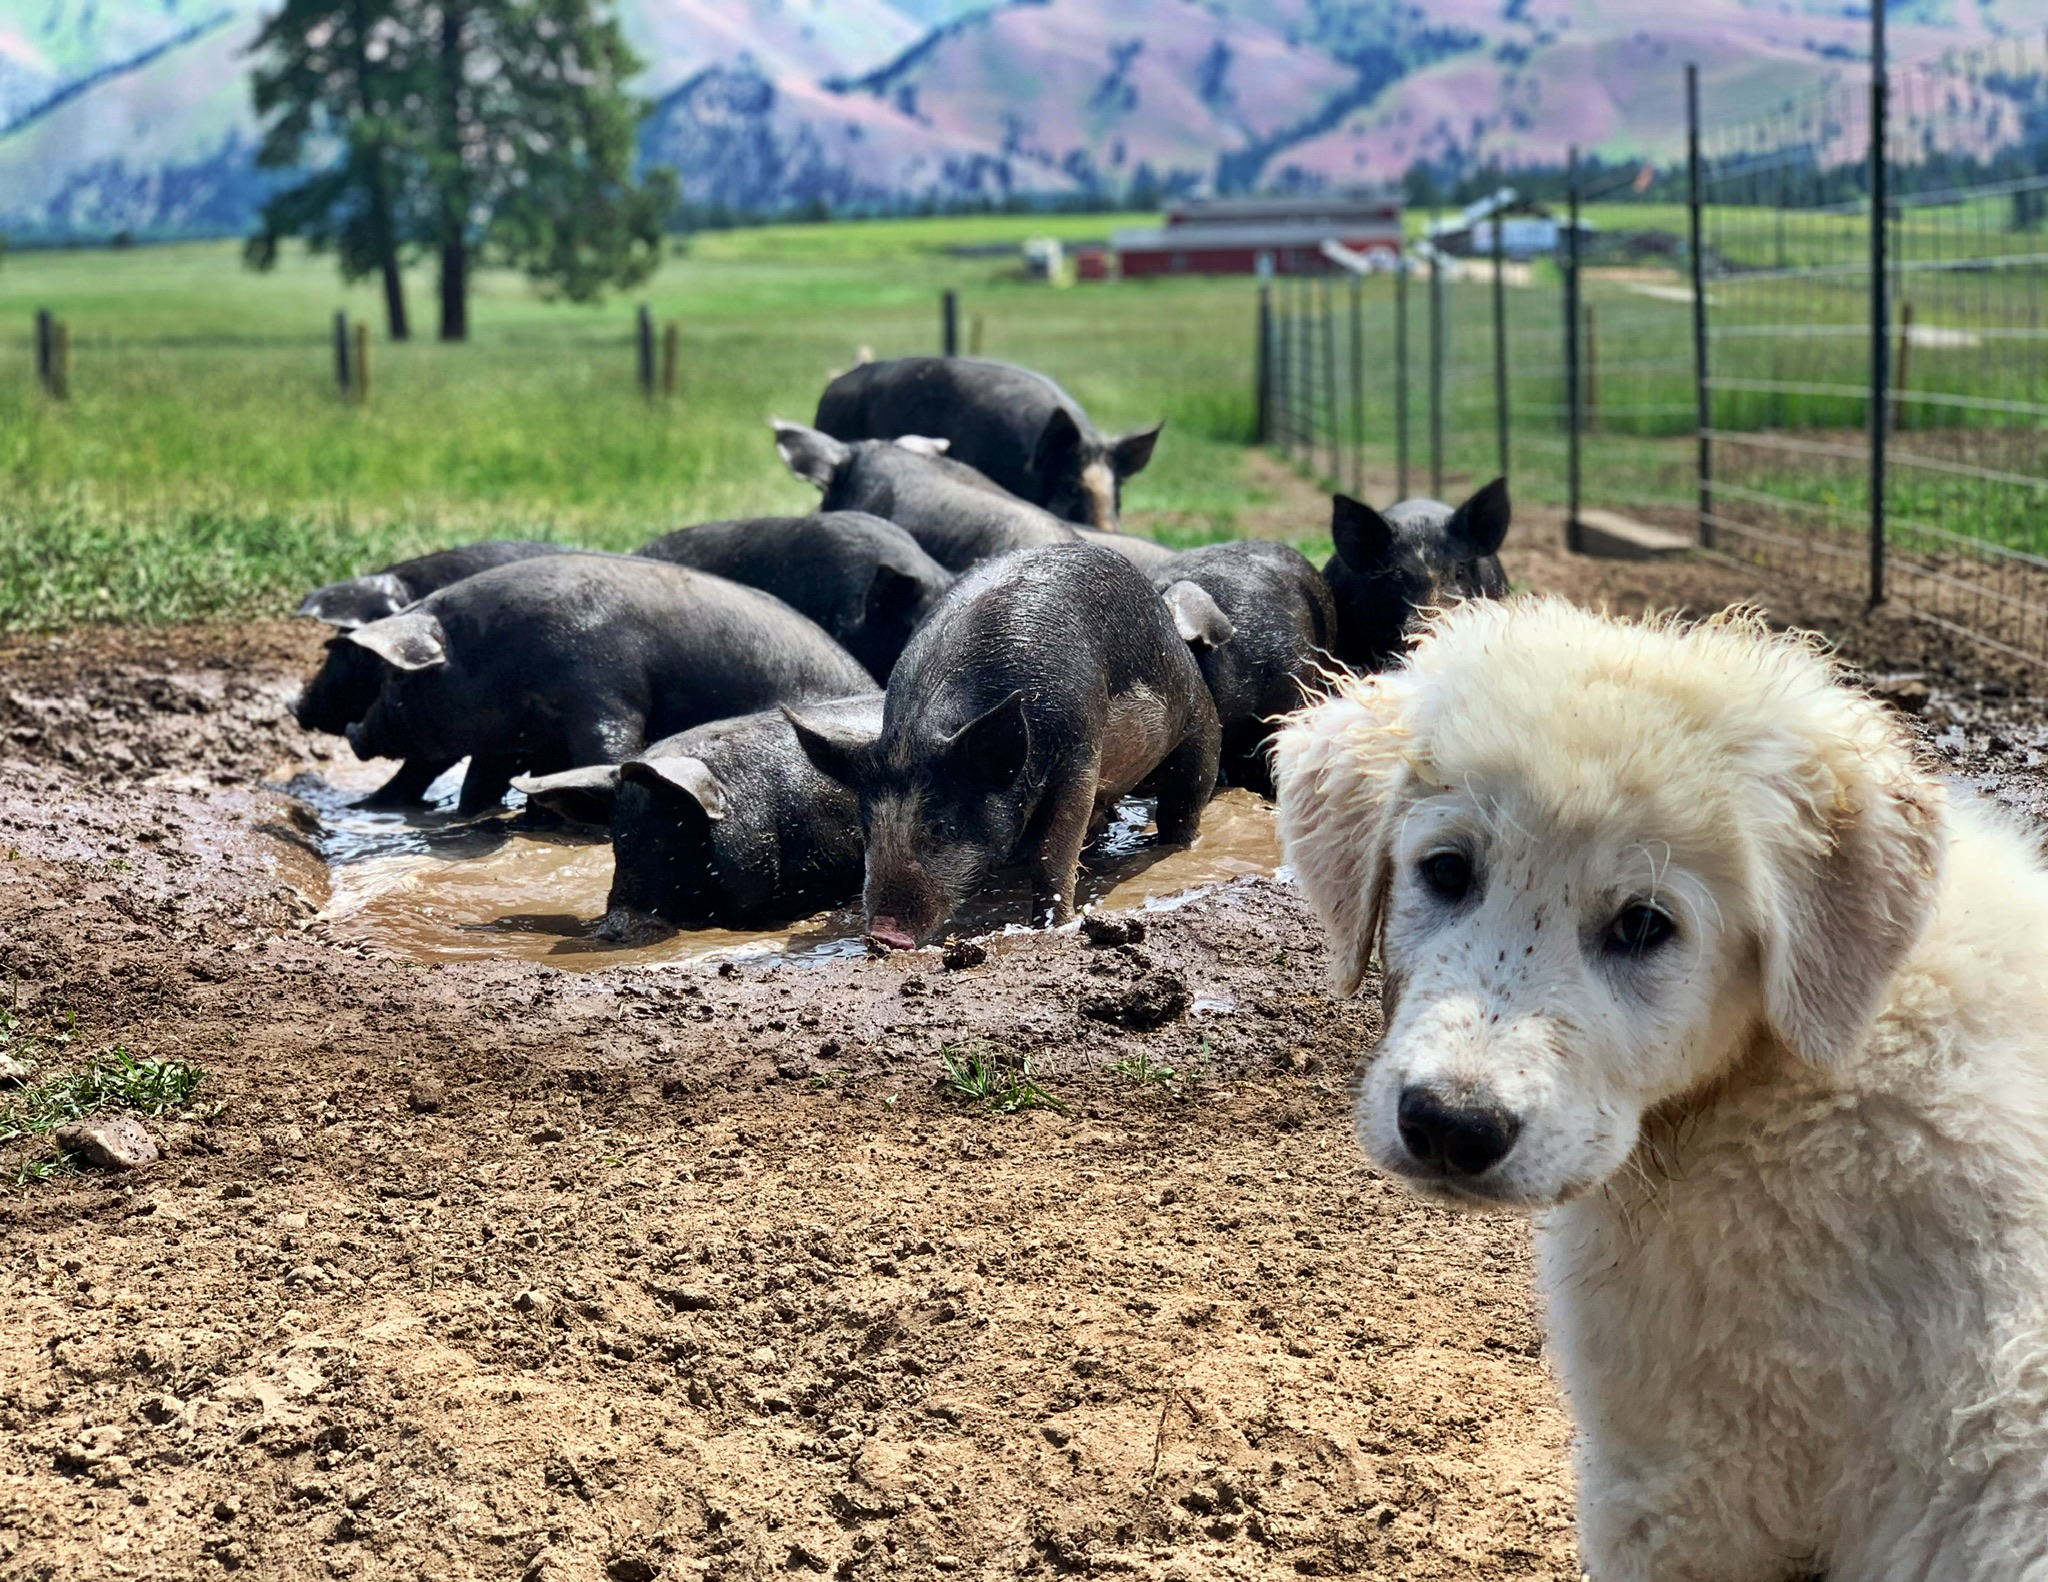 Conk the Guard dog and his pigs